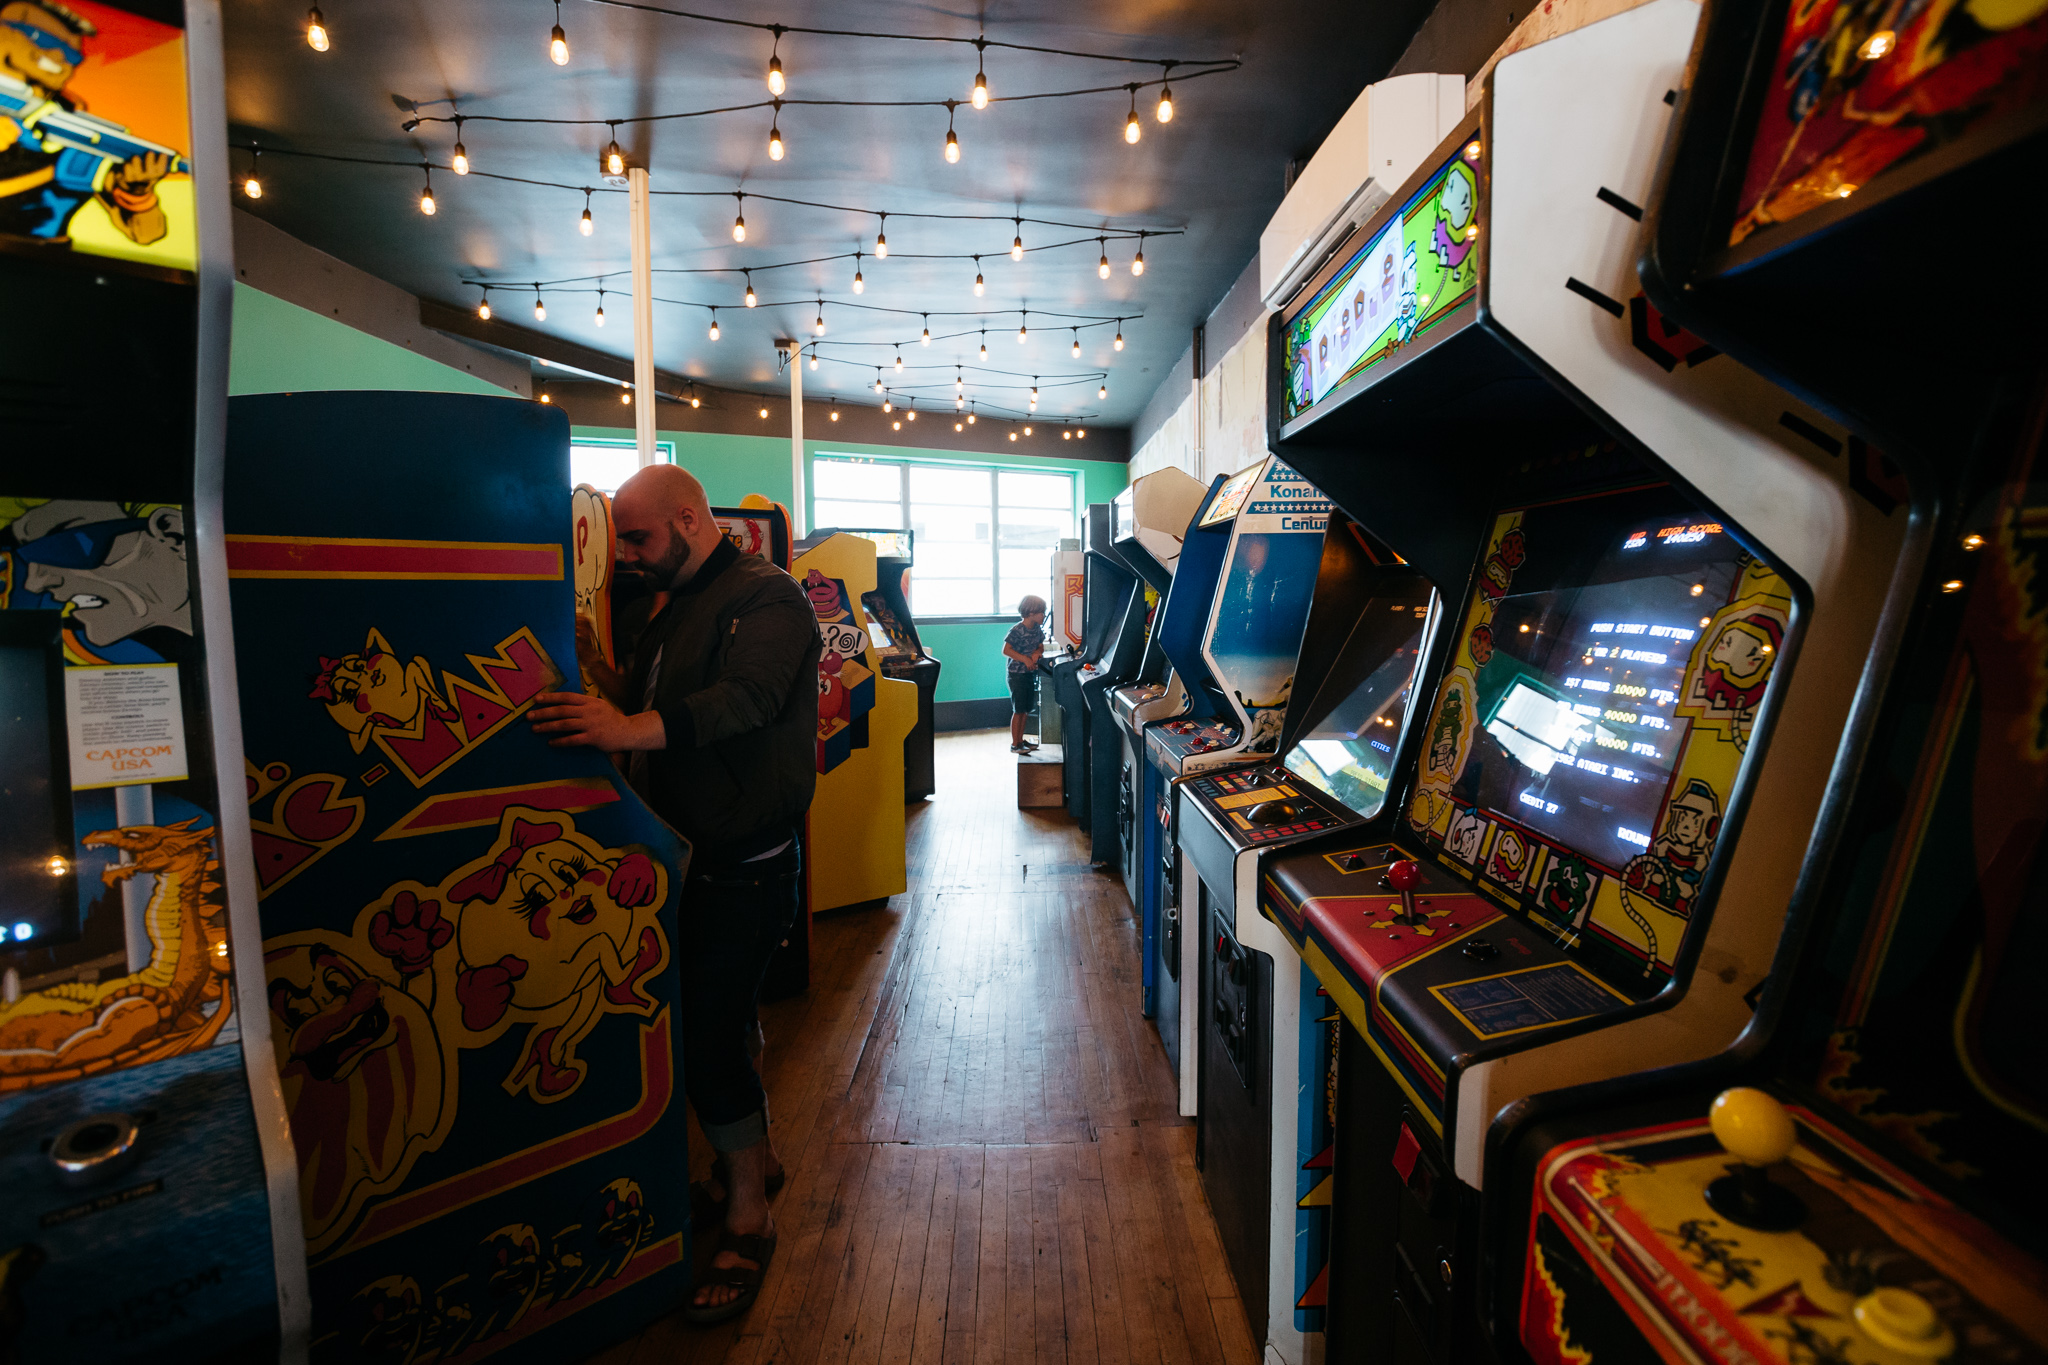 Game consoles line the walls inside Pop Pizza.